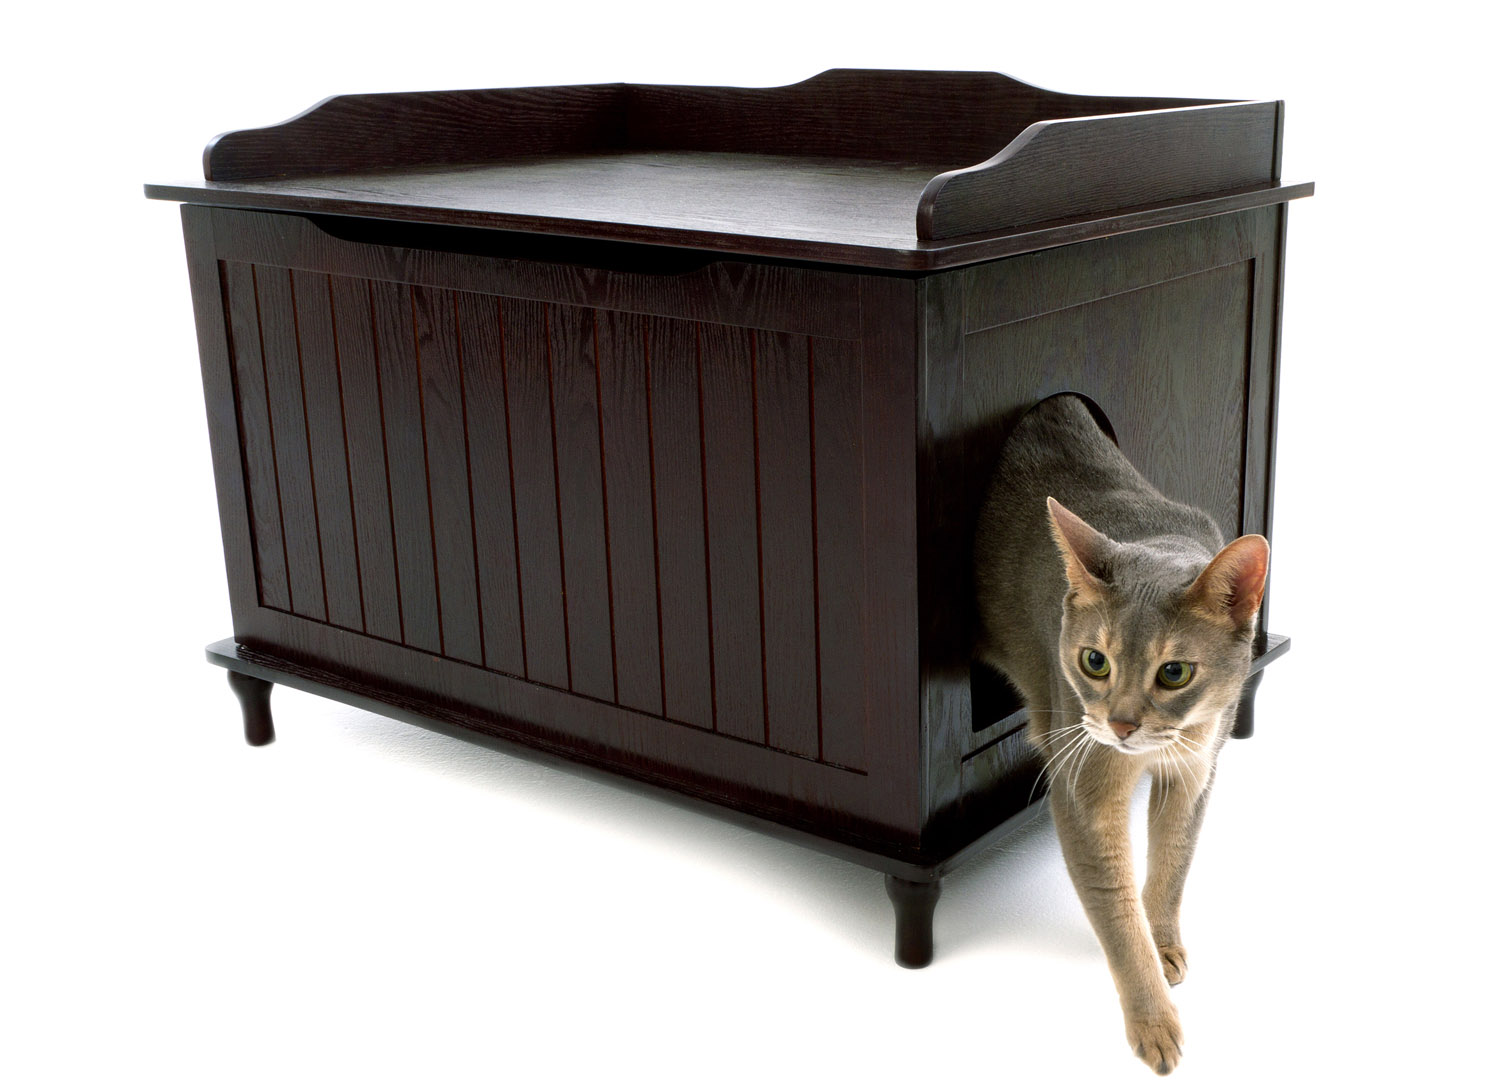 box abfb supplies cat furniture pet products litter overstock bench shipping walnut hidden free today product merry